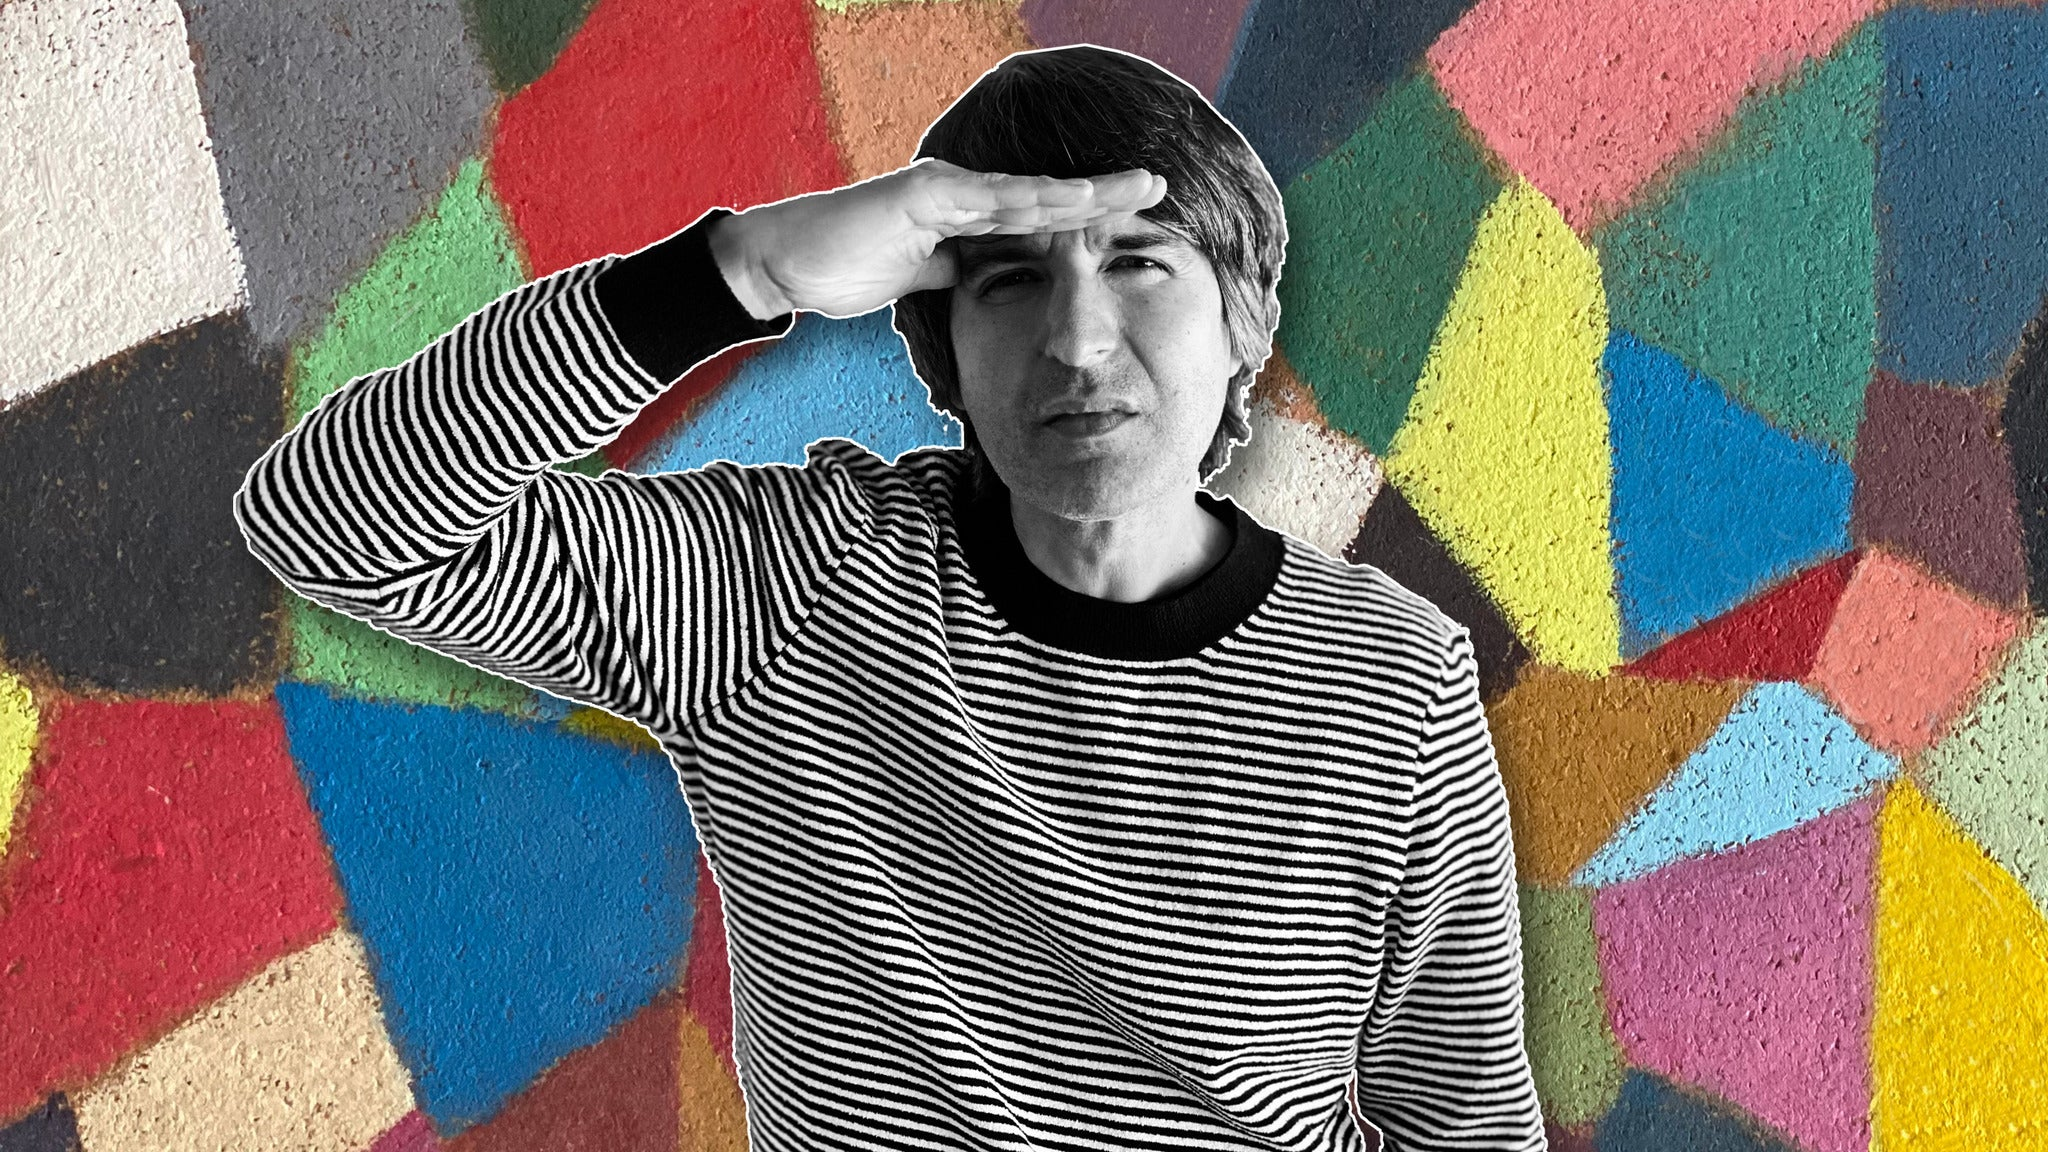 Demetri Martin: I Feel Funny Tour presale code for early tickets in Tysons